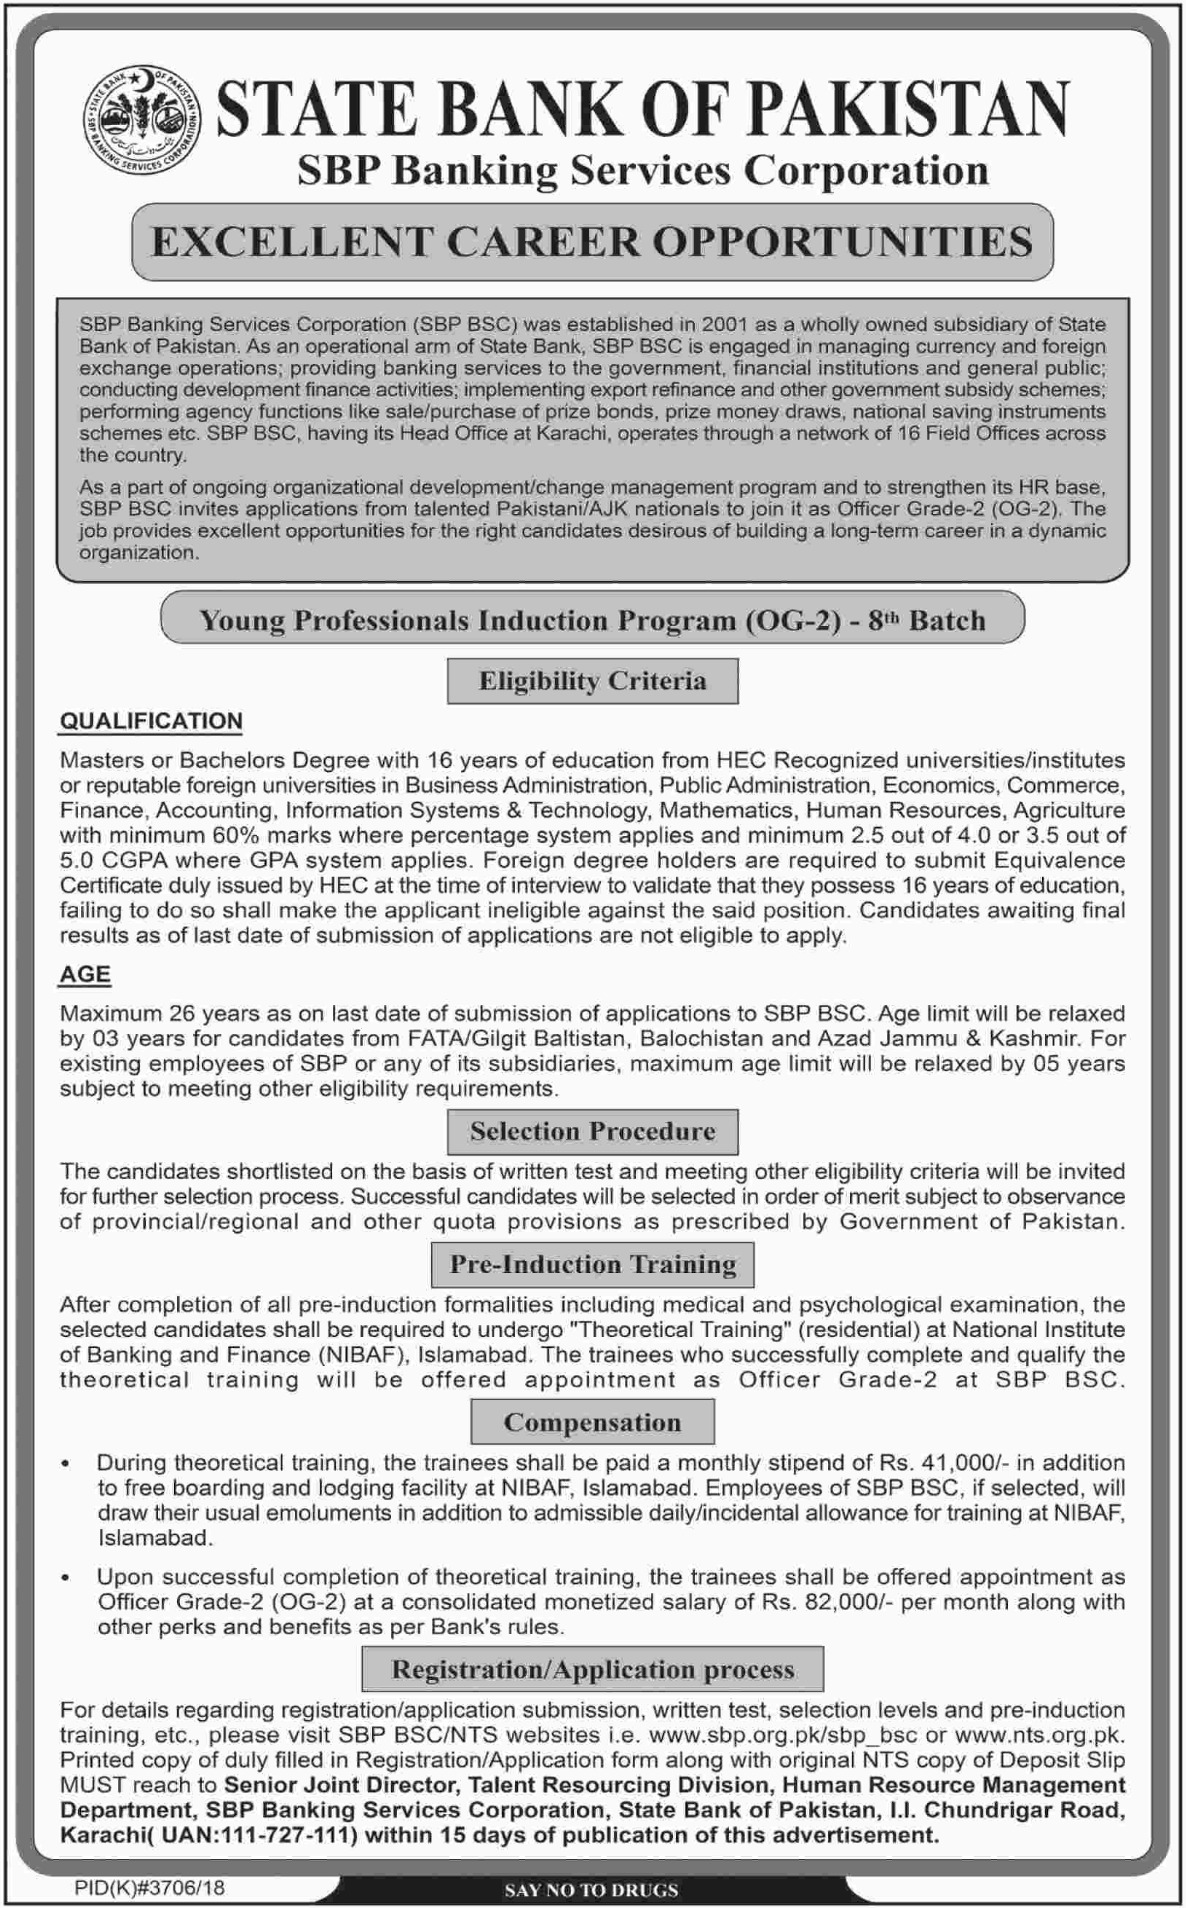 State Bank of Pakistan Jobs 2019 SBP Banking Services Corporation Latest